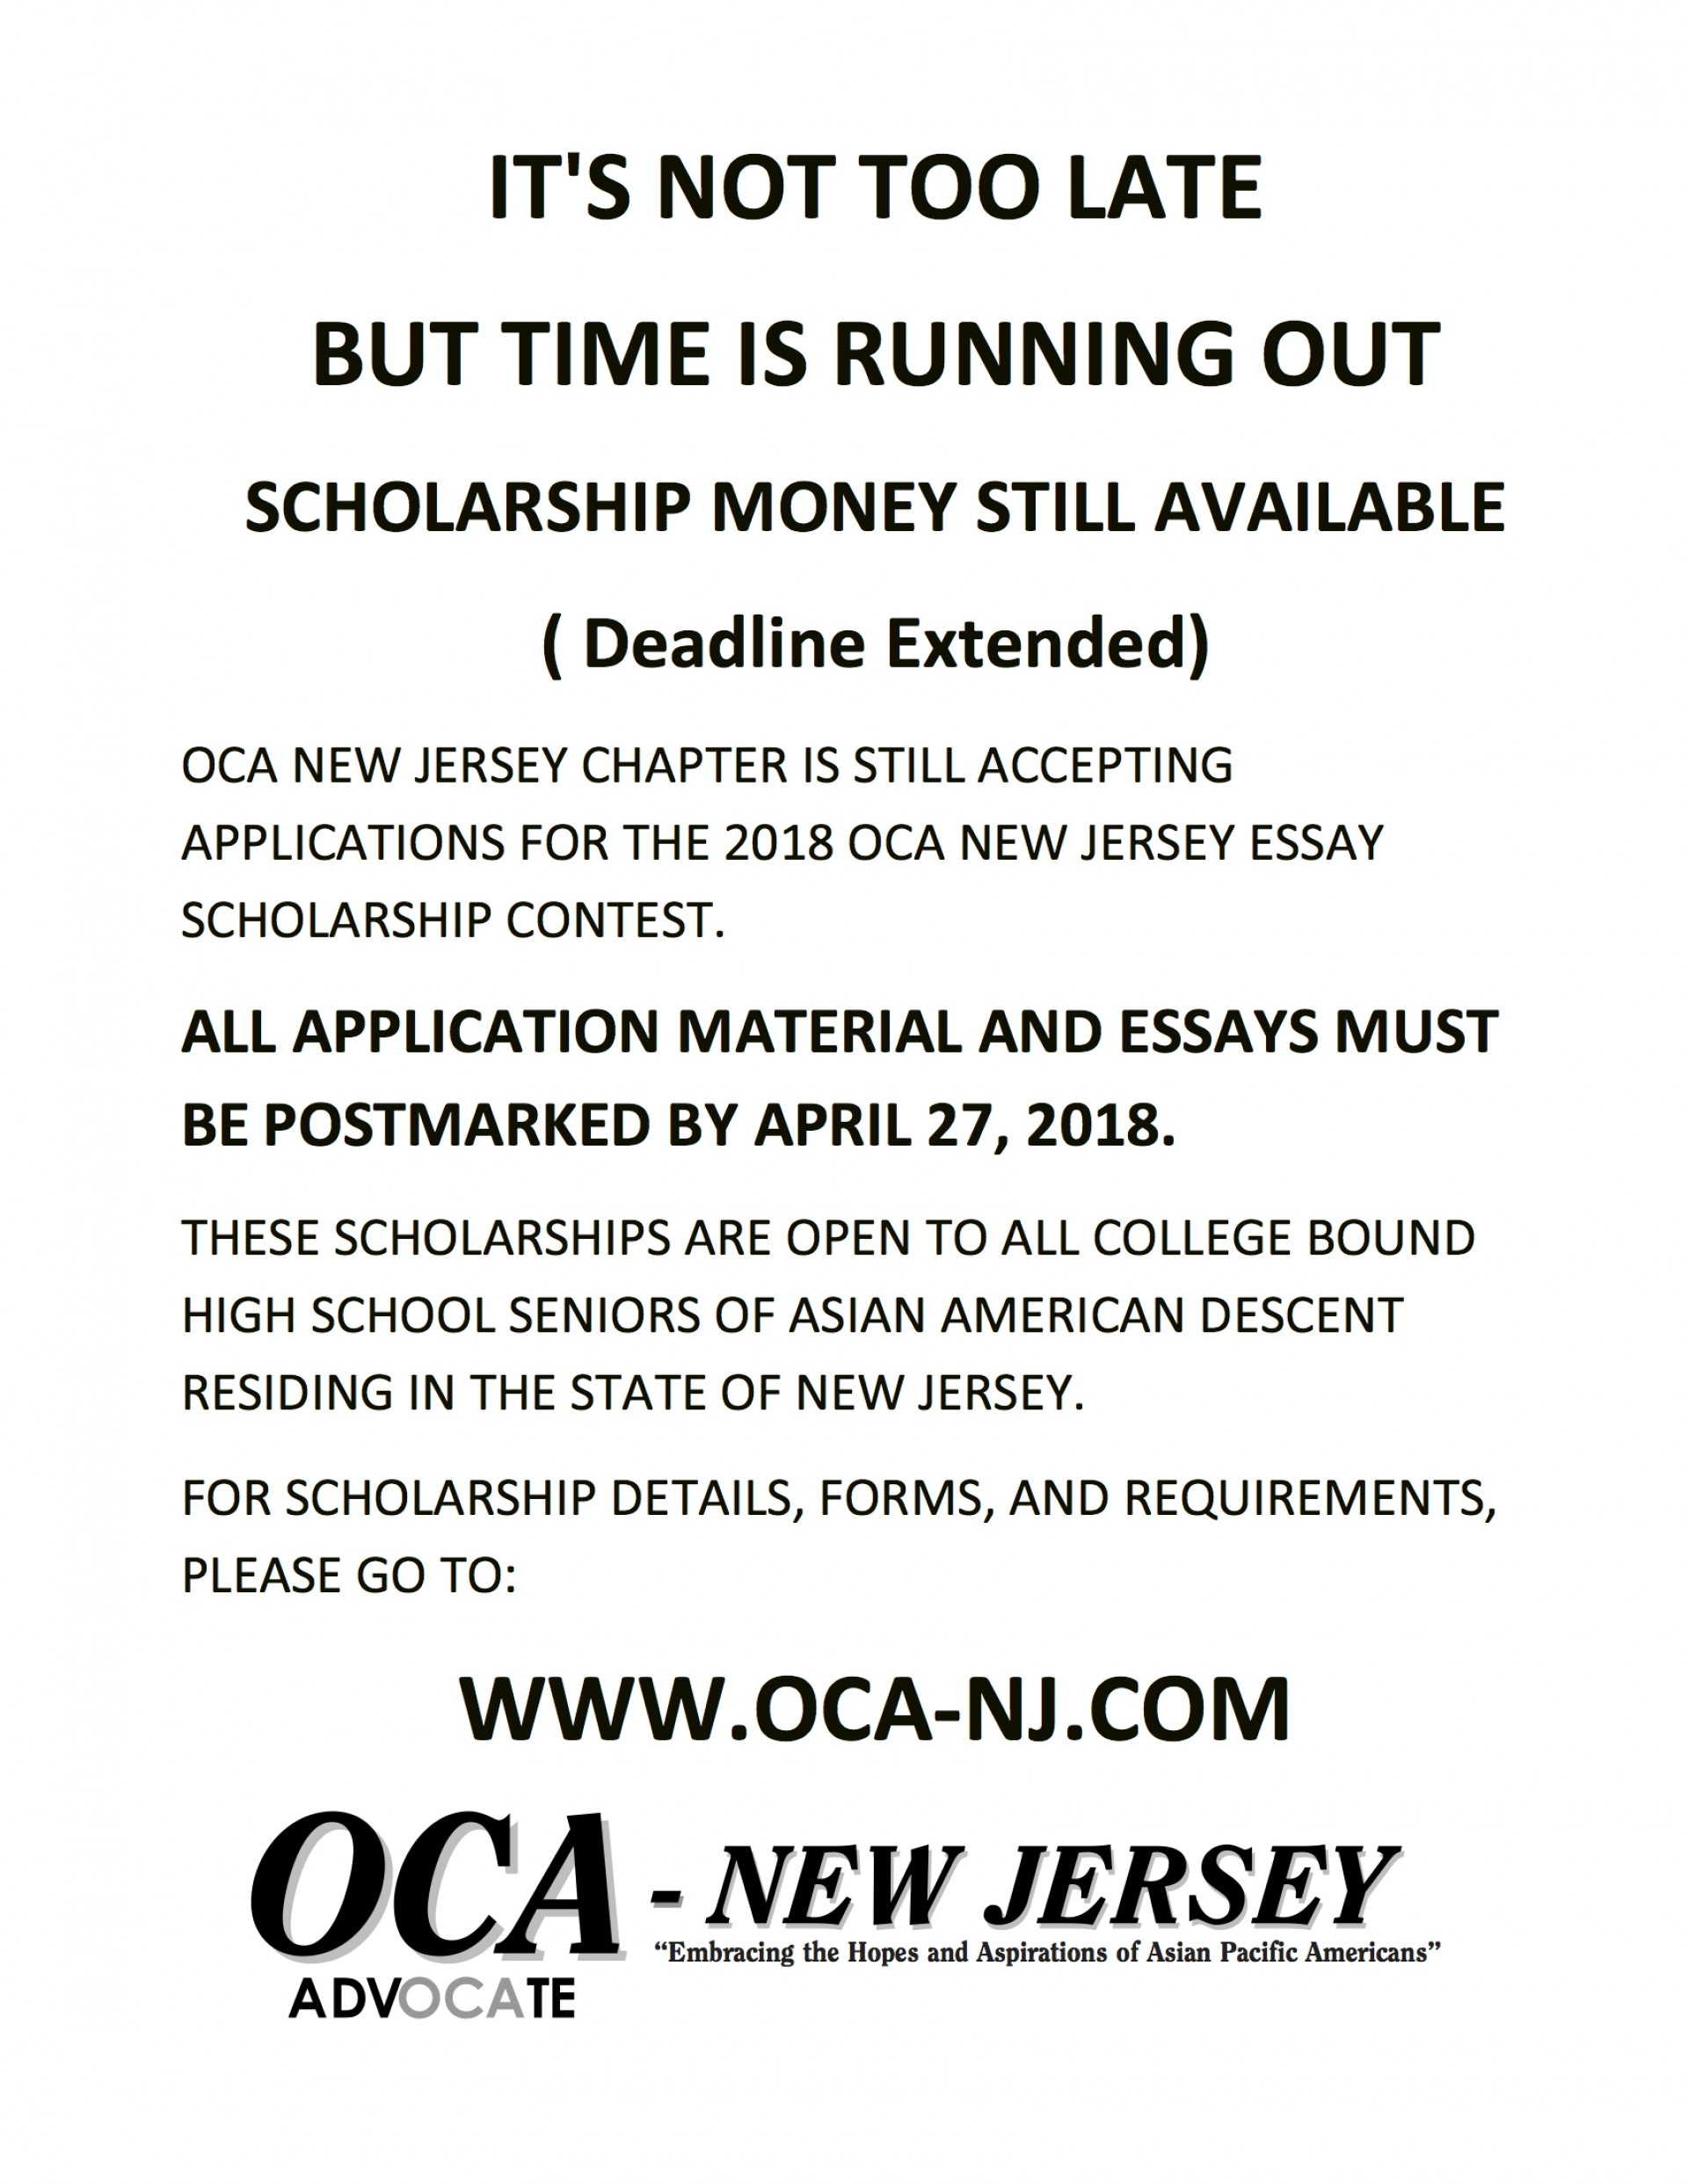 014 Essay Example Scholarships Entended Deadline Oca Nj Shocking For High School Students Study Abroad Examples 2018 Bachelors And Masters 1920